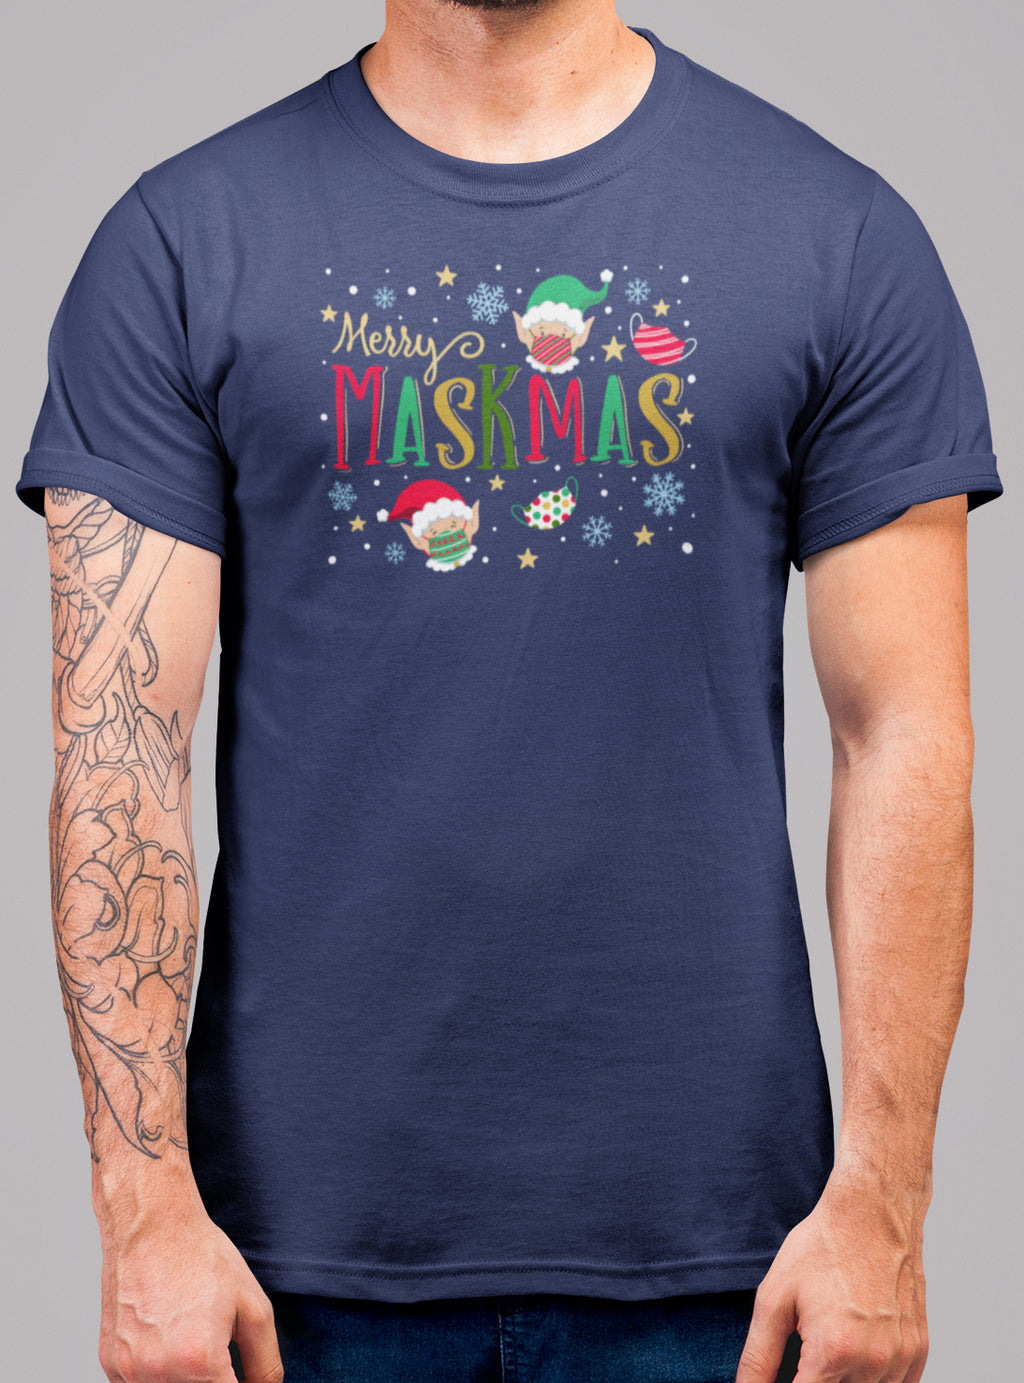 Merry Maskmas Christmas T-Shirt - Bearified Gear